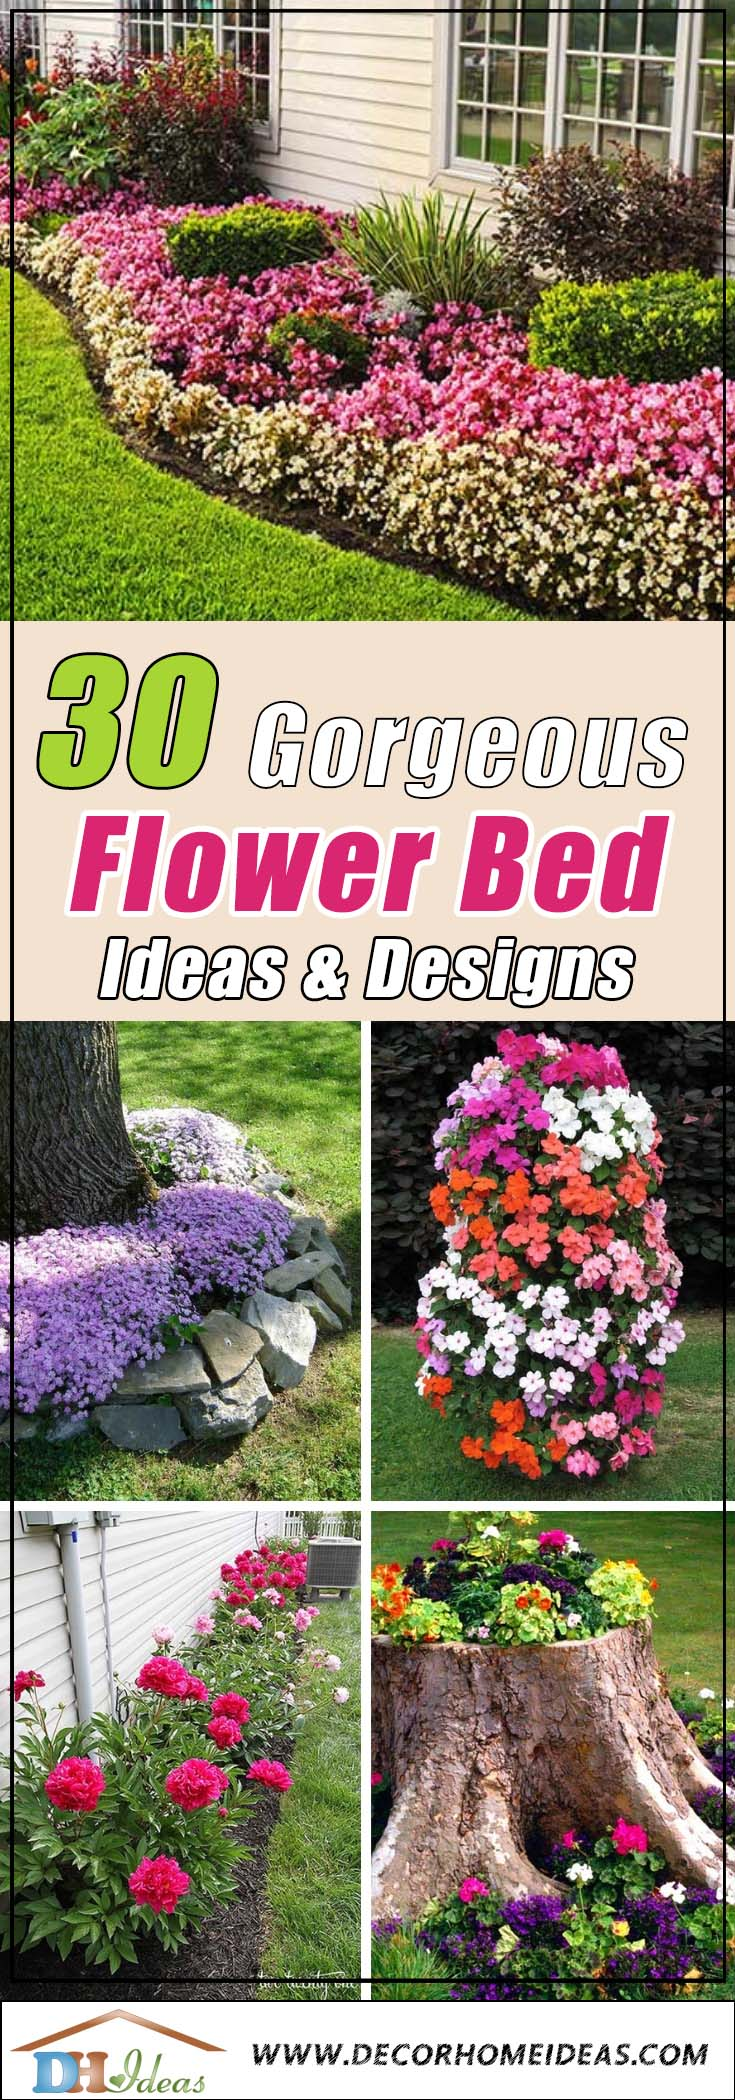 30 Gorgeous Flower Bed Ideas To Try Today | Best flower bed and flower planter ideas you can try today in your backyard or garden. #flowerbed #flowerpot #planter #flowerplanter #garden #backyard #diy #gardening #gardens #gardeningtips #decorhomeideas